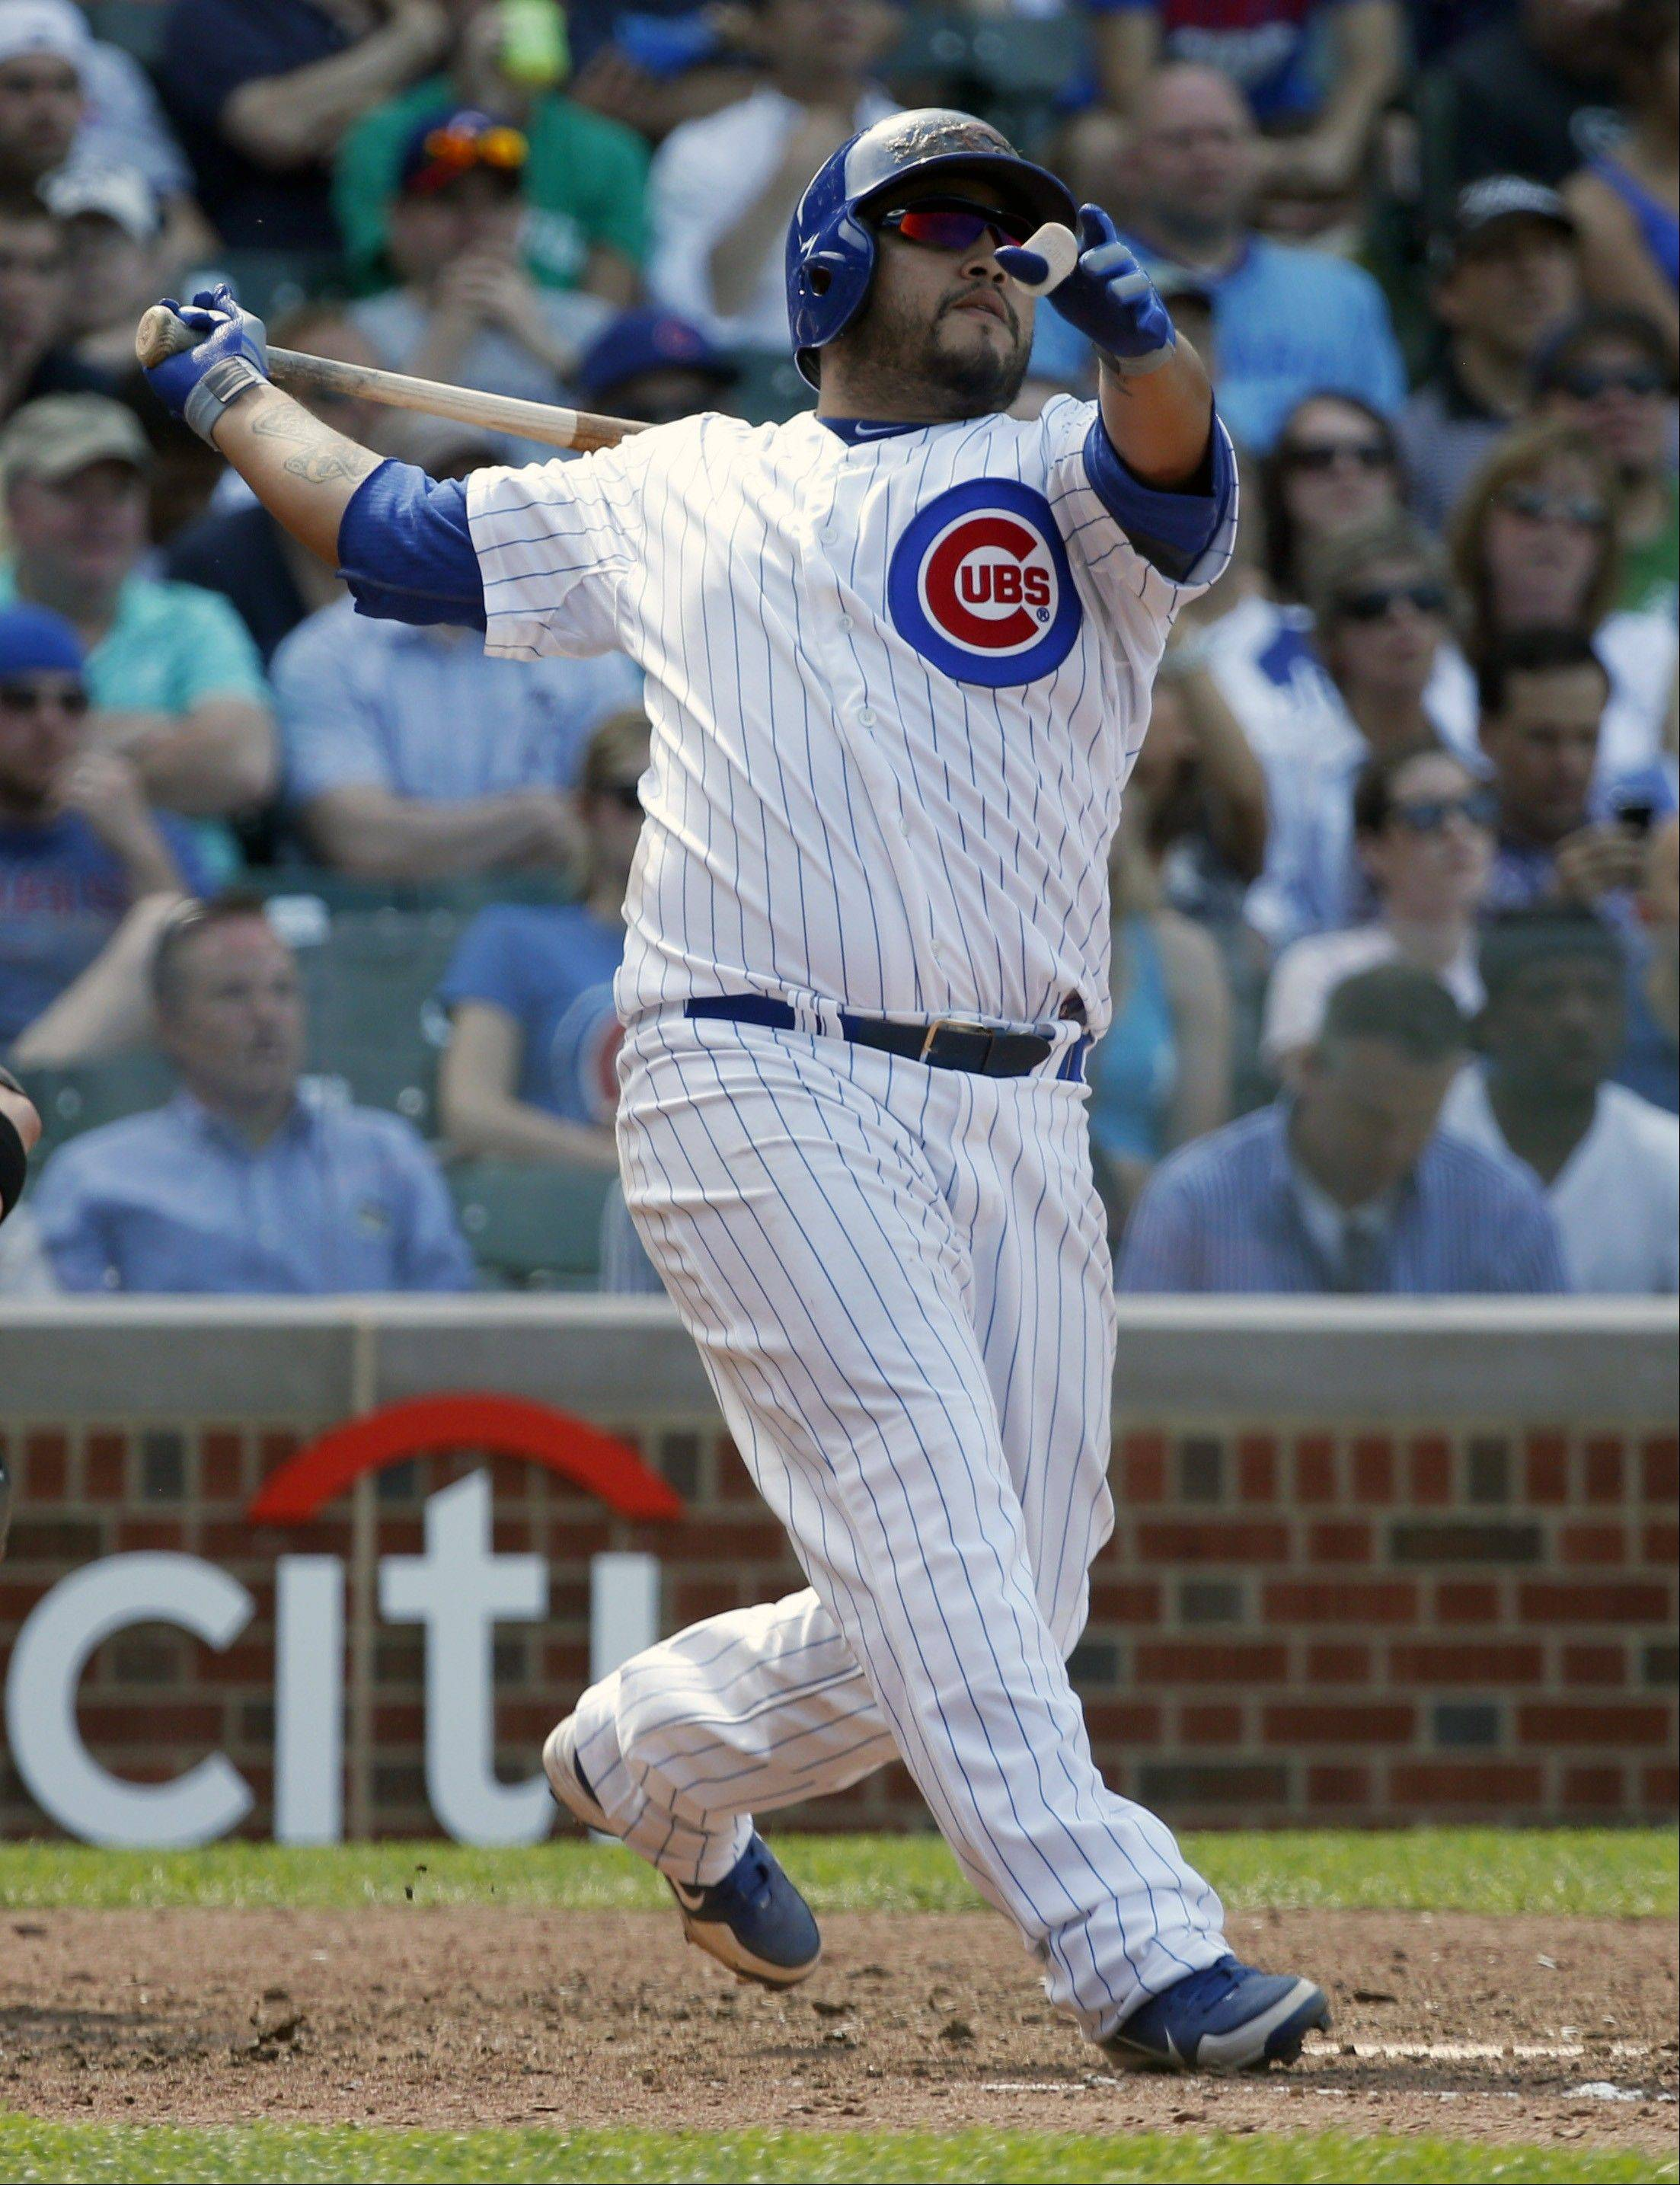 Dioner Navarro admires his third homer of the game Wednesday, in the sixth inning of the Cubs' 9-3 win over the White Sox at Wrigley Field.